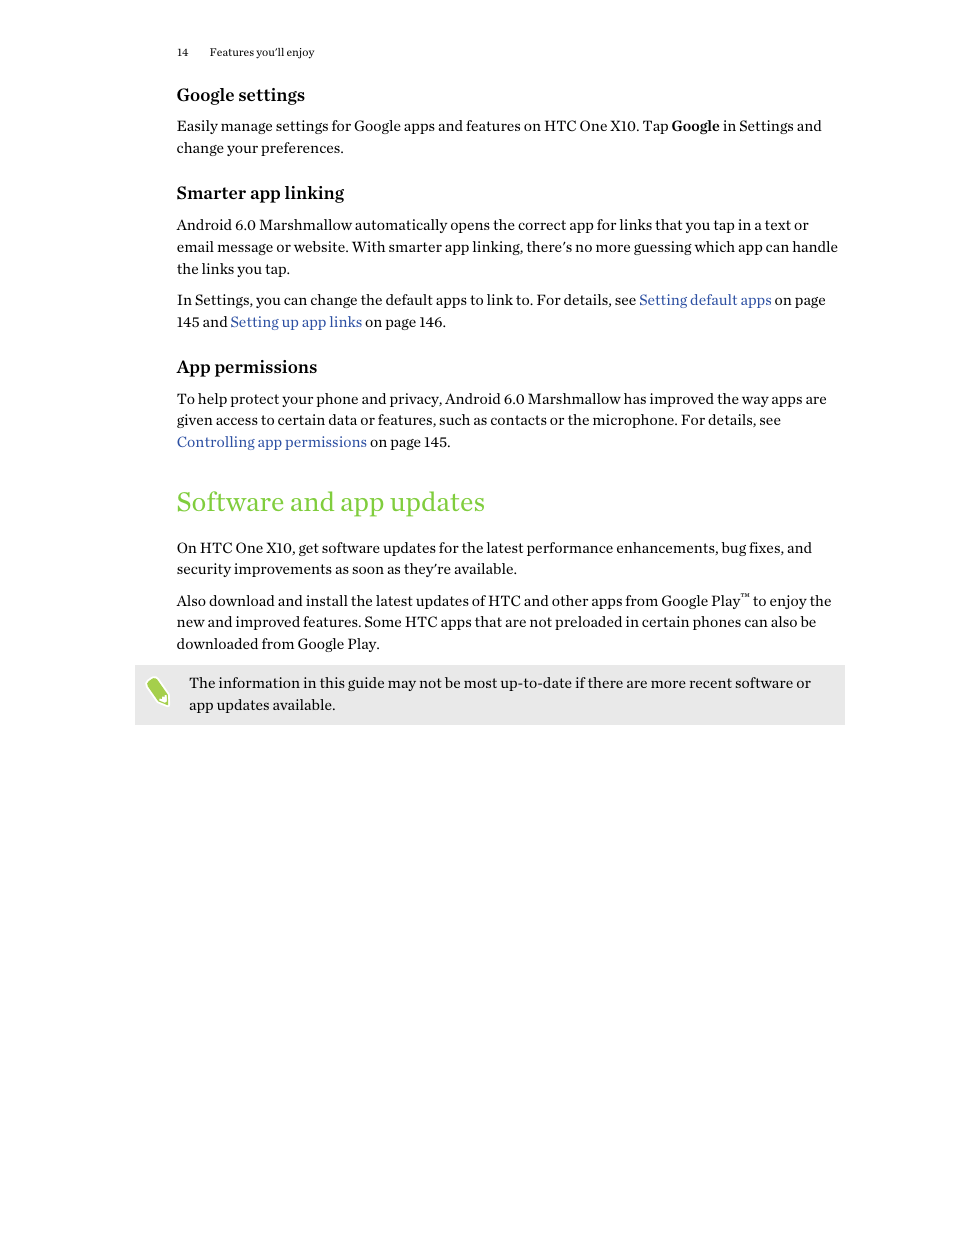 Software and app updates | HTC One X10 User Manual | Page 14 / 161